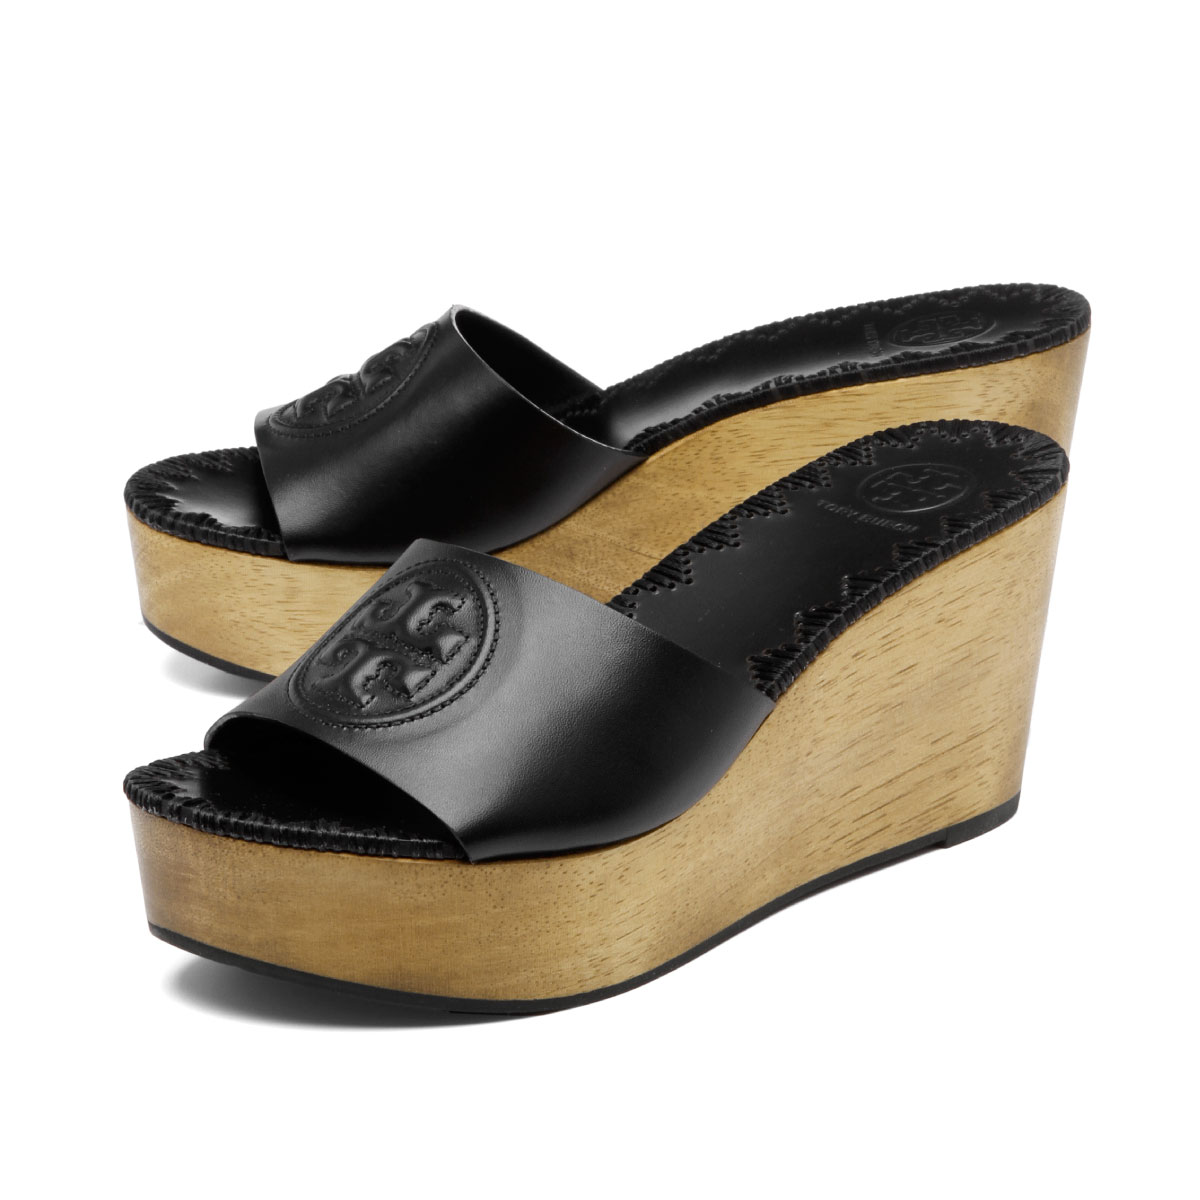 0a47d445f8 Tolly Birch TORY BURCH shoes Lady's 47092 006 wedge sandals PATTY patty  PERFECT BLACK black ...